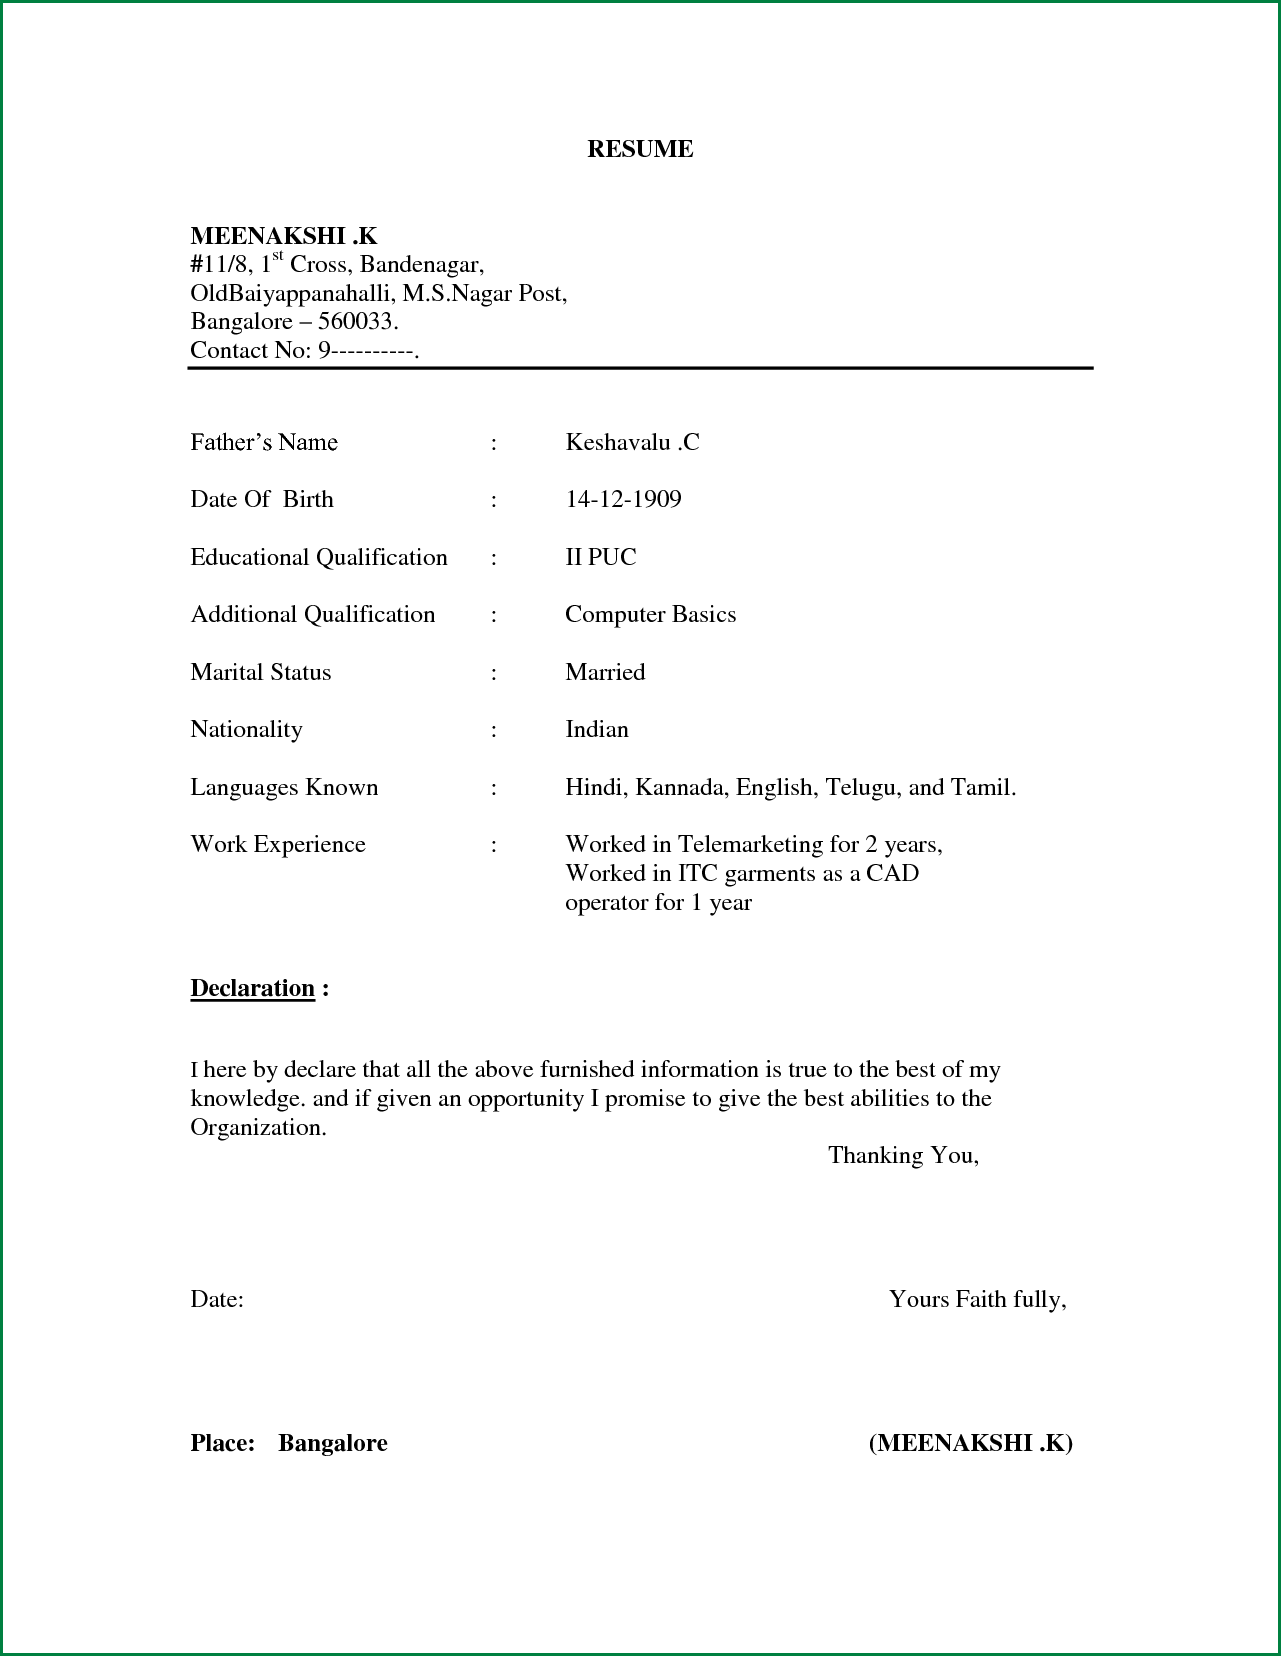 Simple Resume Format For Freshers In Word File137085913png – Latest Resume Format for Freshers